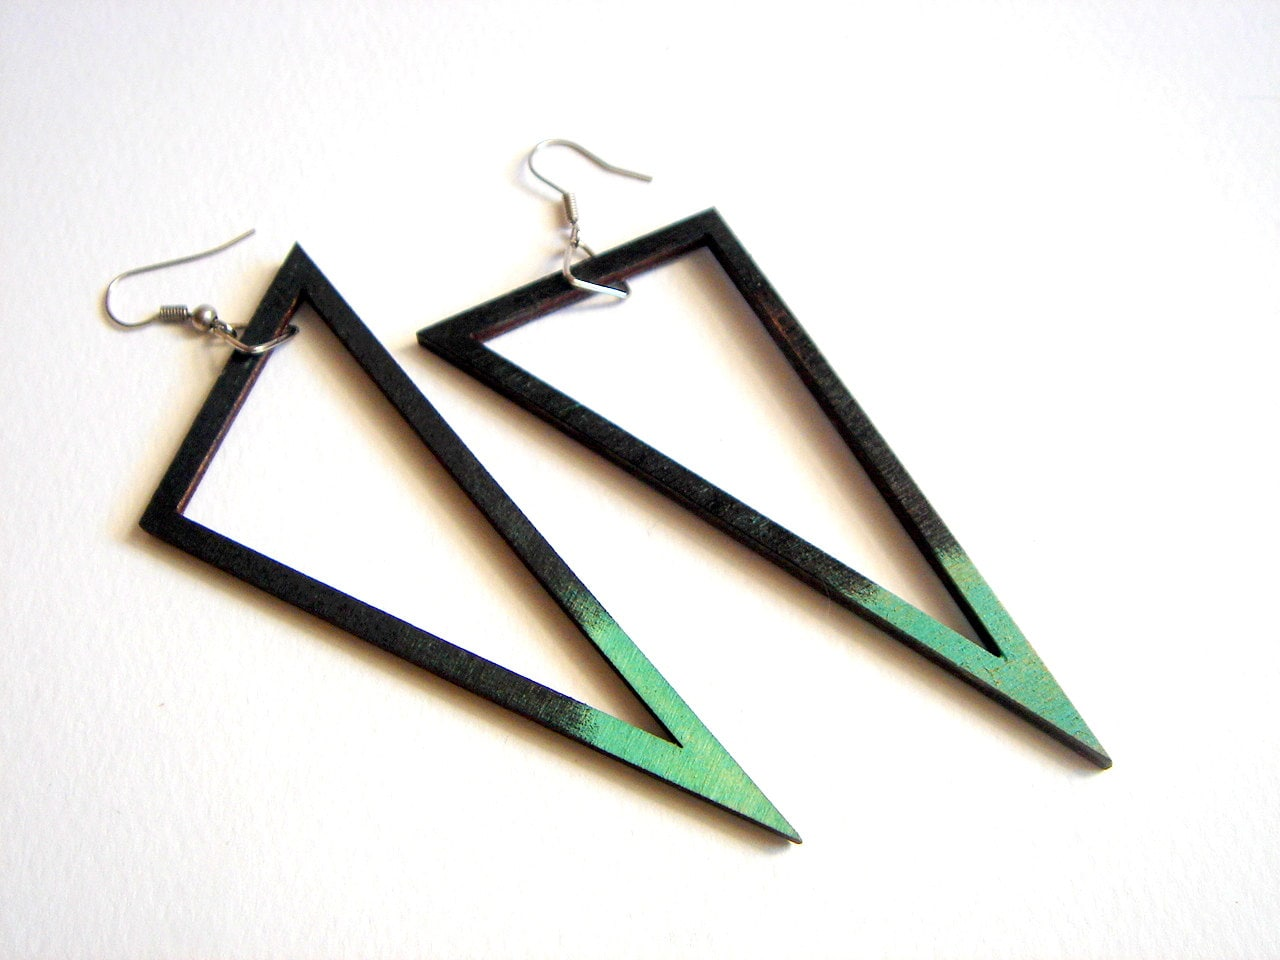 detail misfit earrings shop geometric for closet sugar en sales your